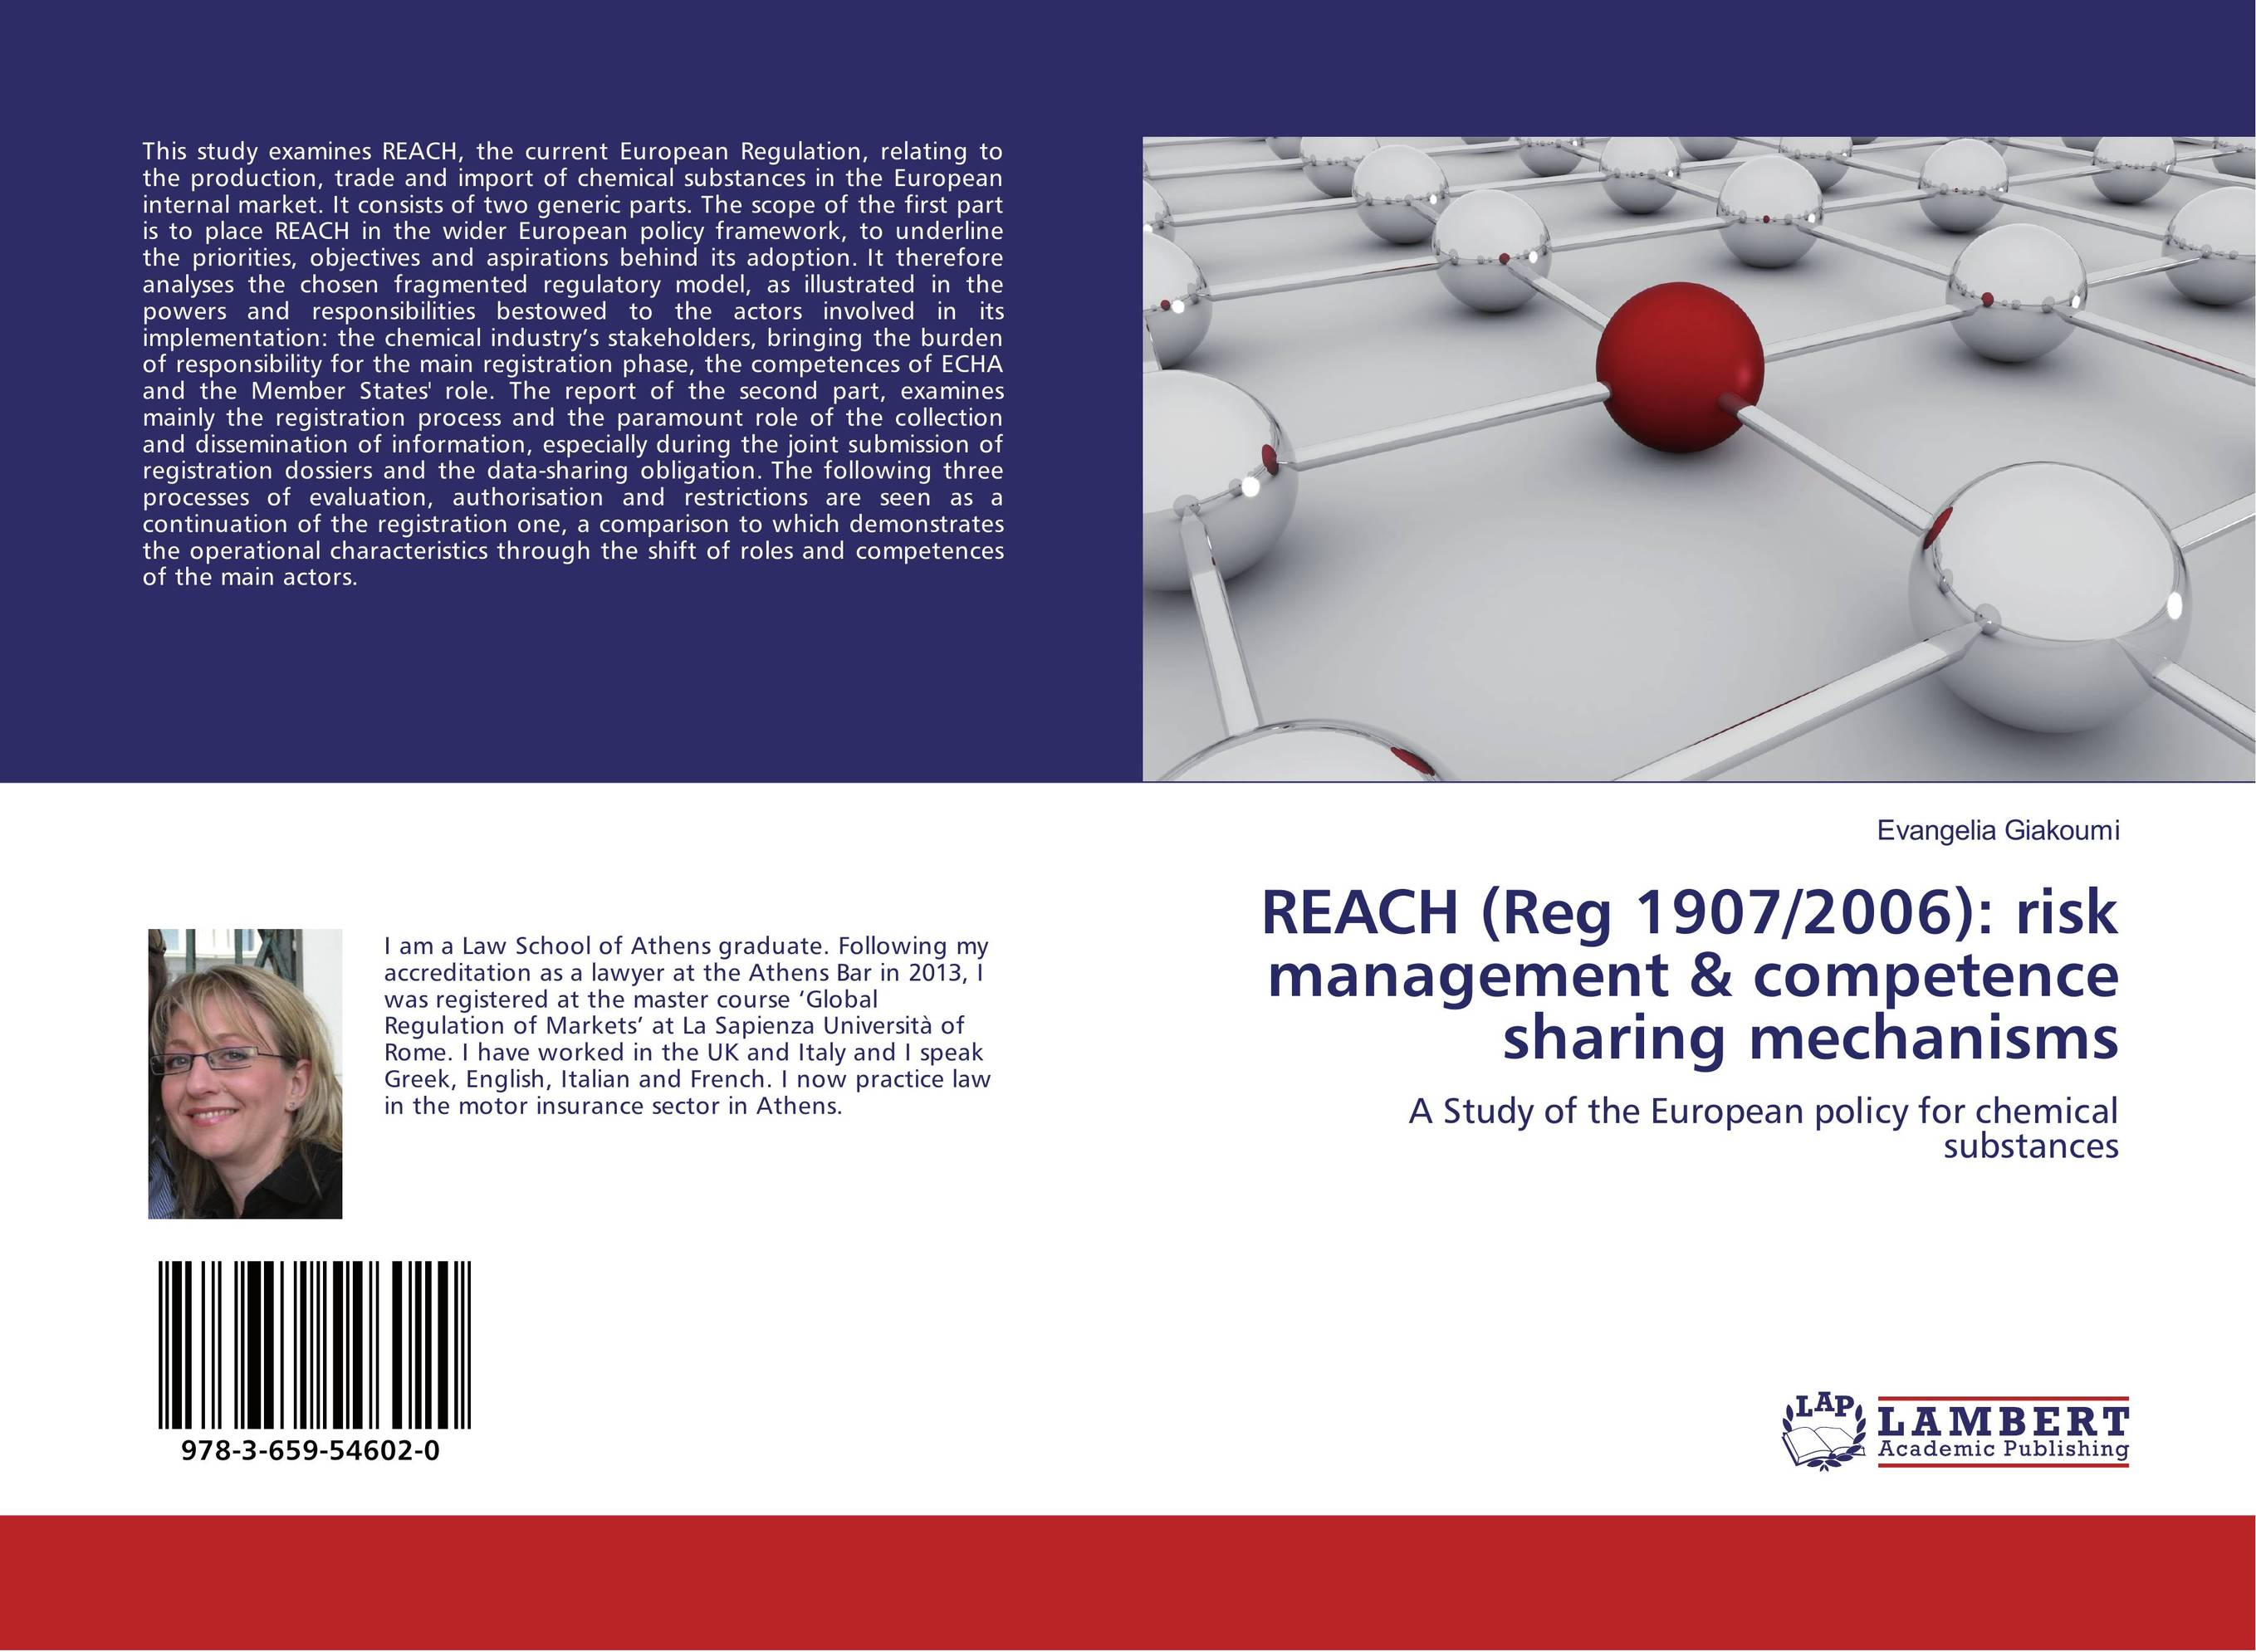 REACH (Reg 1907/2006): risk management & competence sharing mechanisms the submission